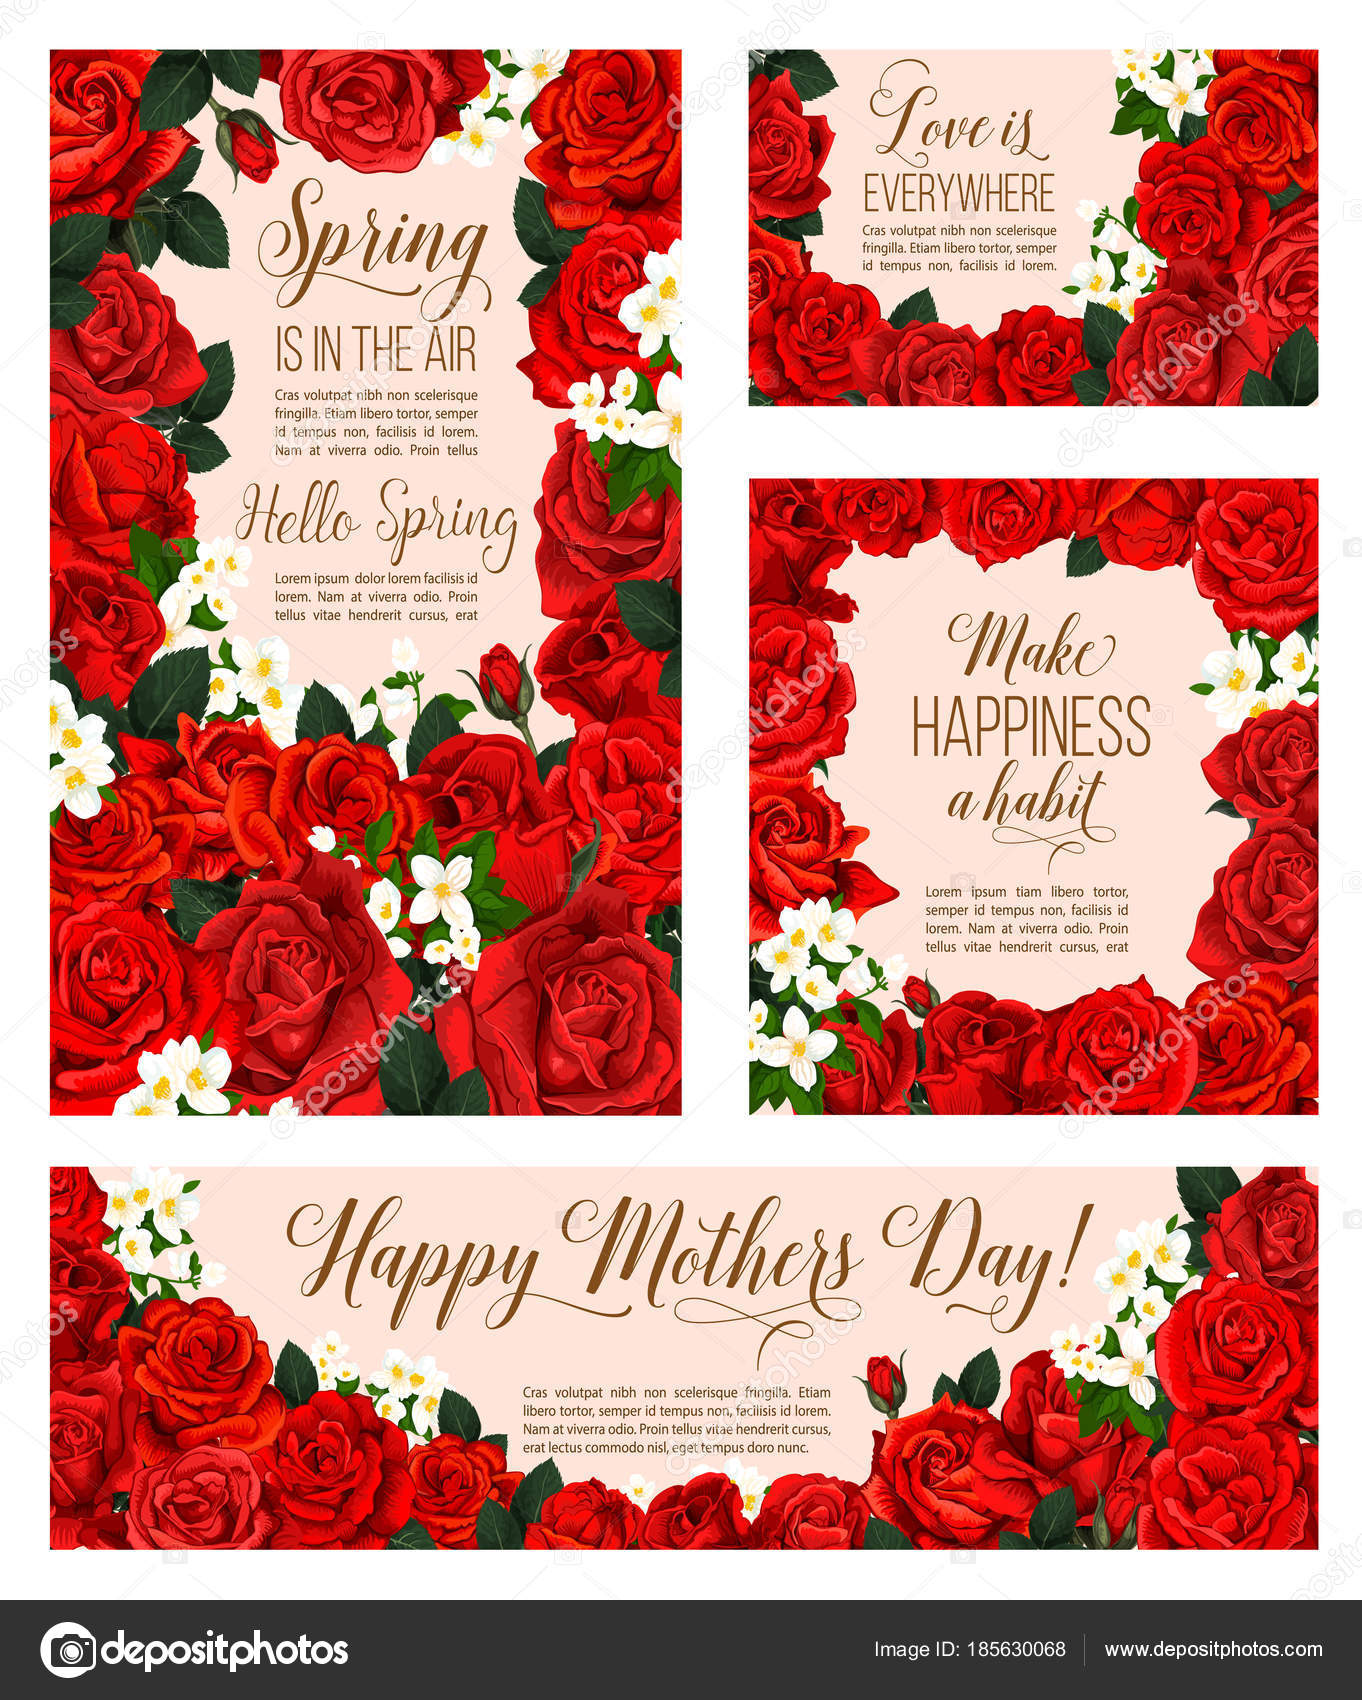 Vector spring flowers of mother day greeting cards stock vector spring is in air seasonal greeting cards for mother day holiday of red roses and flowers bunch for springtime season celebration vector design of blooming m4hsunfo